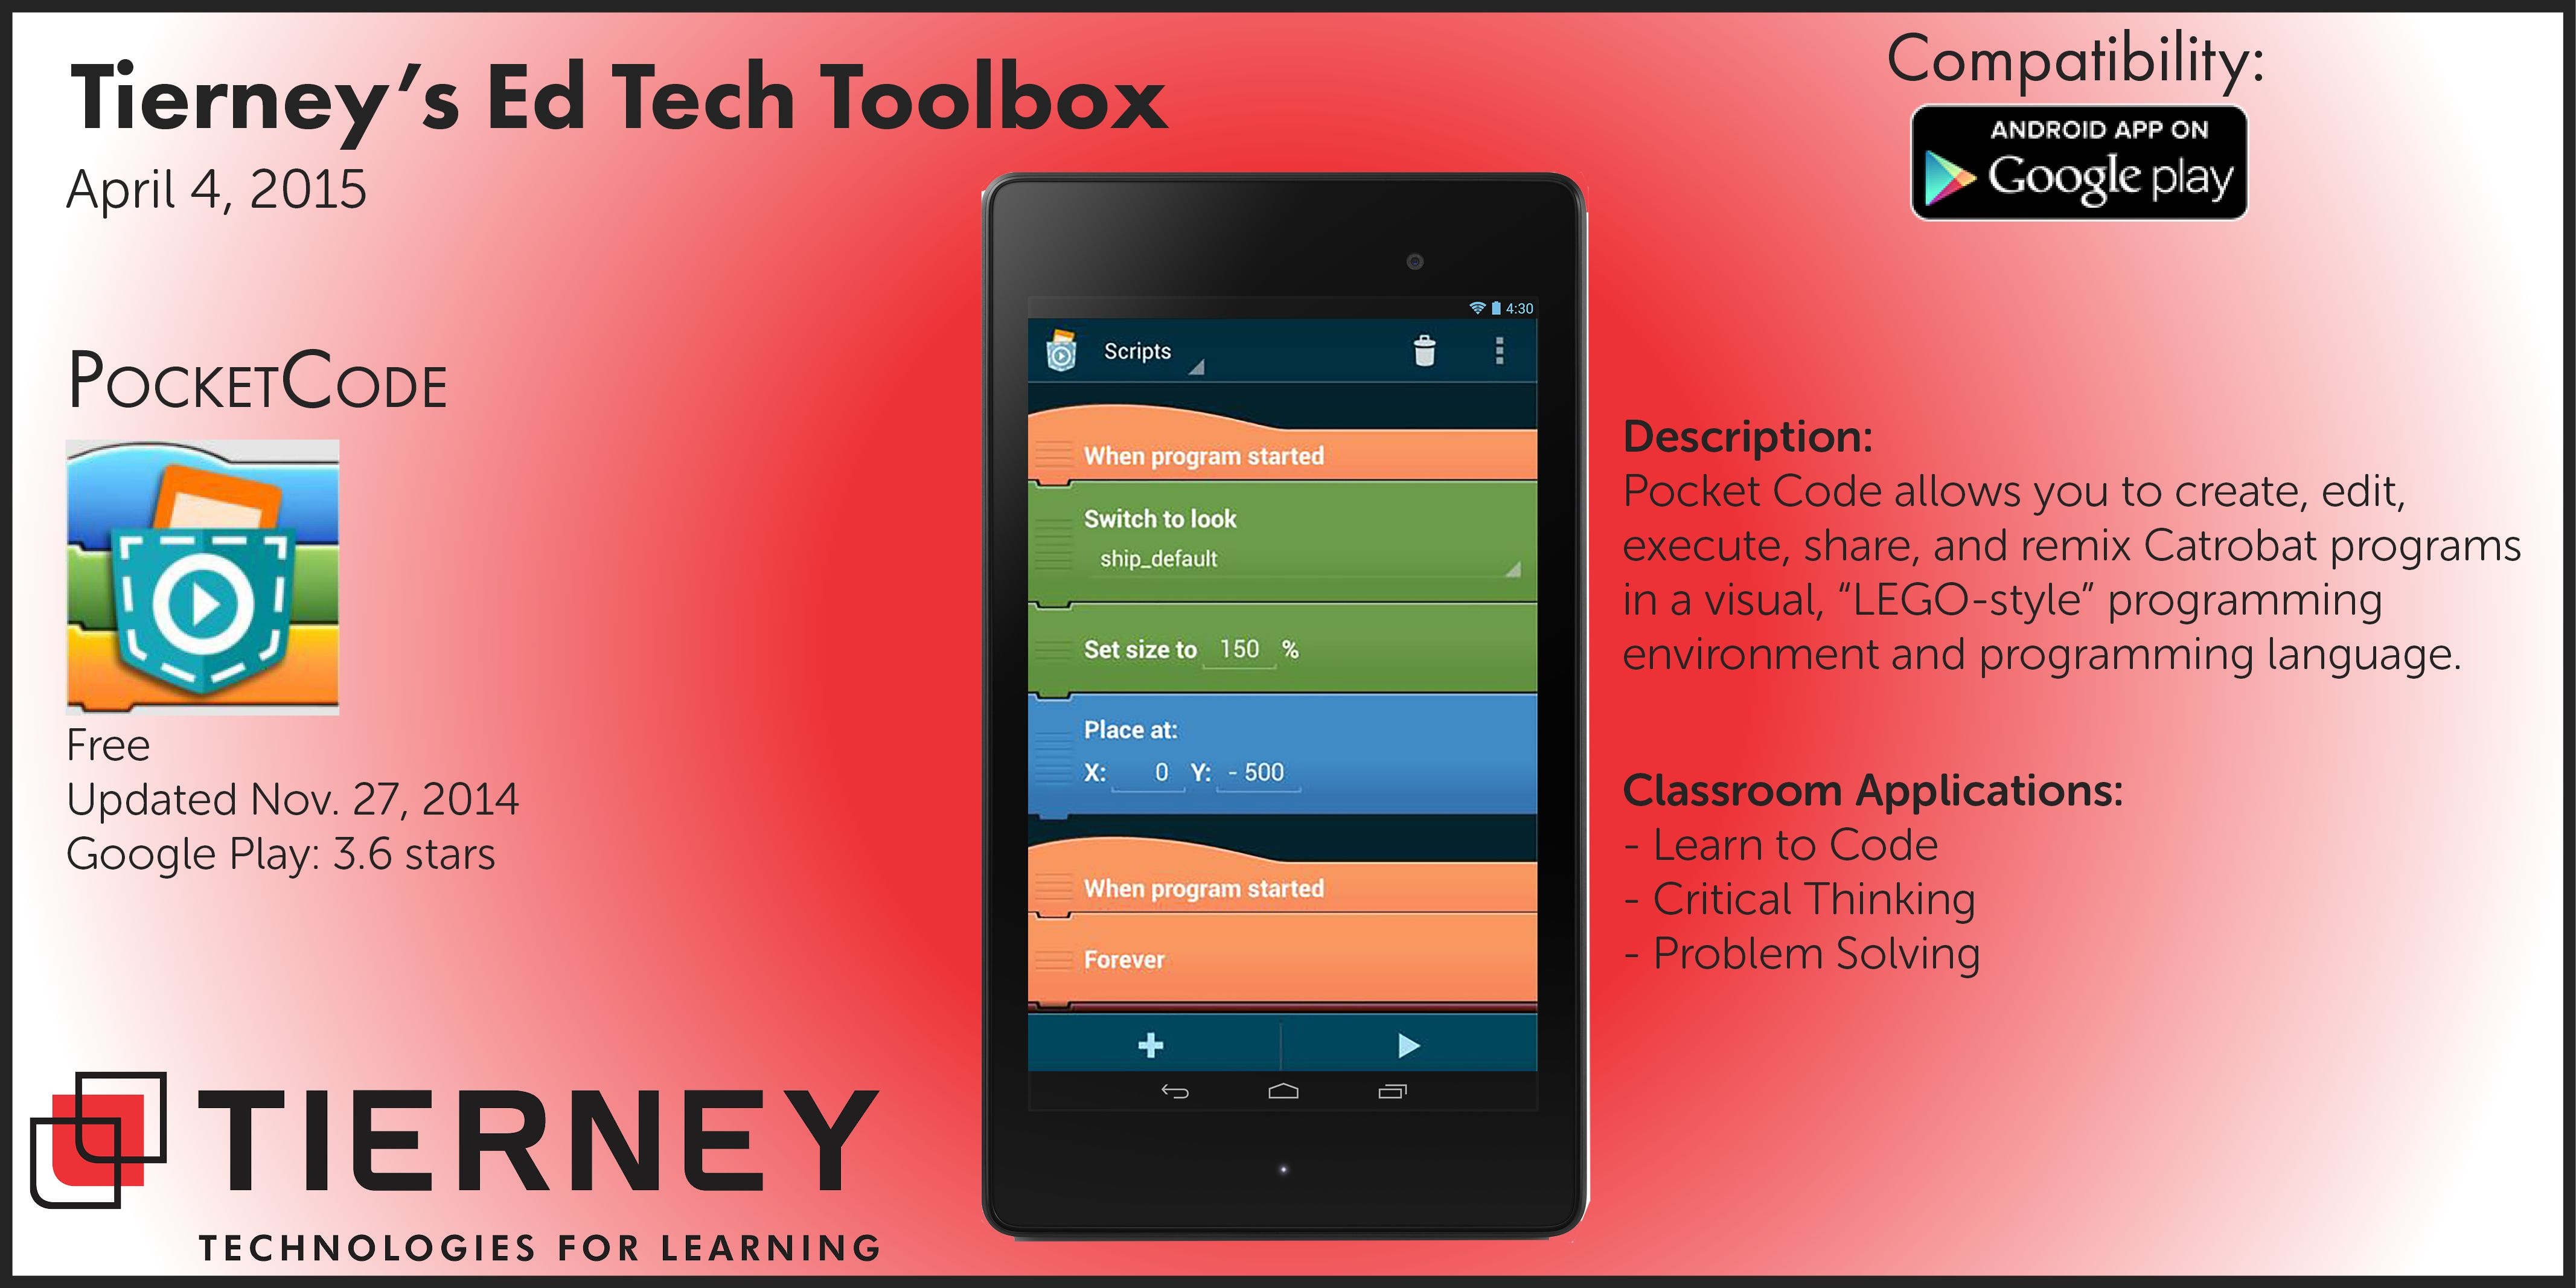 #TierneyTools April 4, 2015: PocketCode https://pocketcode.org/ Follow TierneyEd on Twitter and Tierney Brothers on Facebook for new tech tools! https://www.facebook.com/TierneyBrothers https://twitter.com/tierneybrothers #edtech